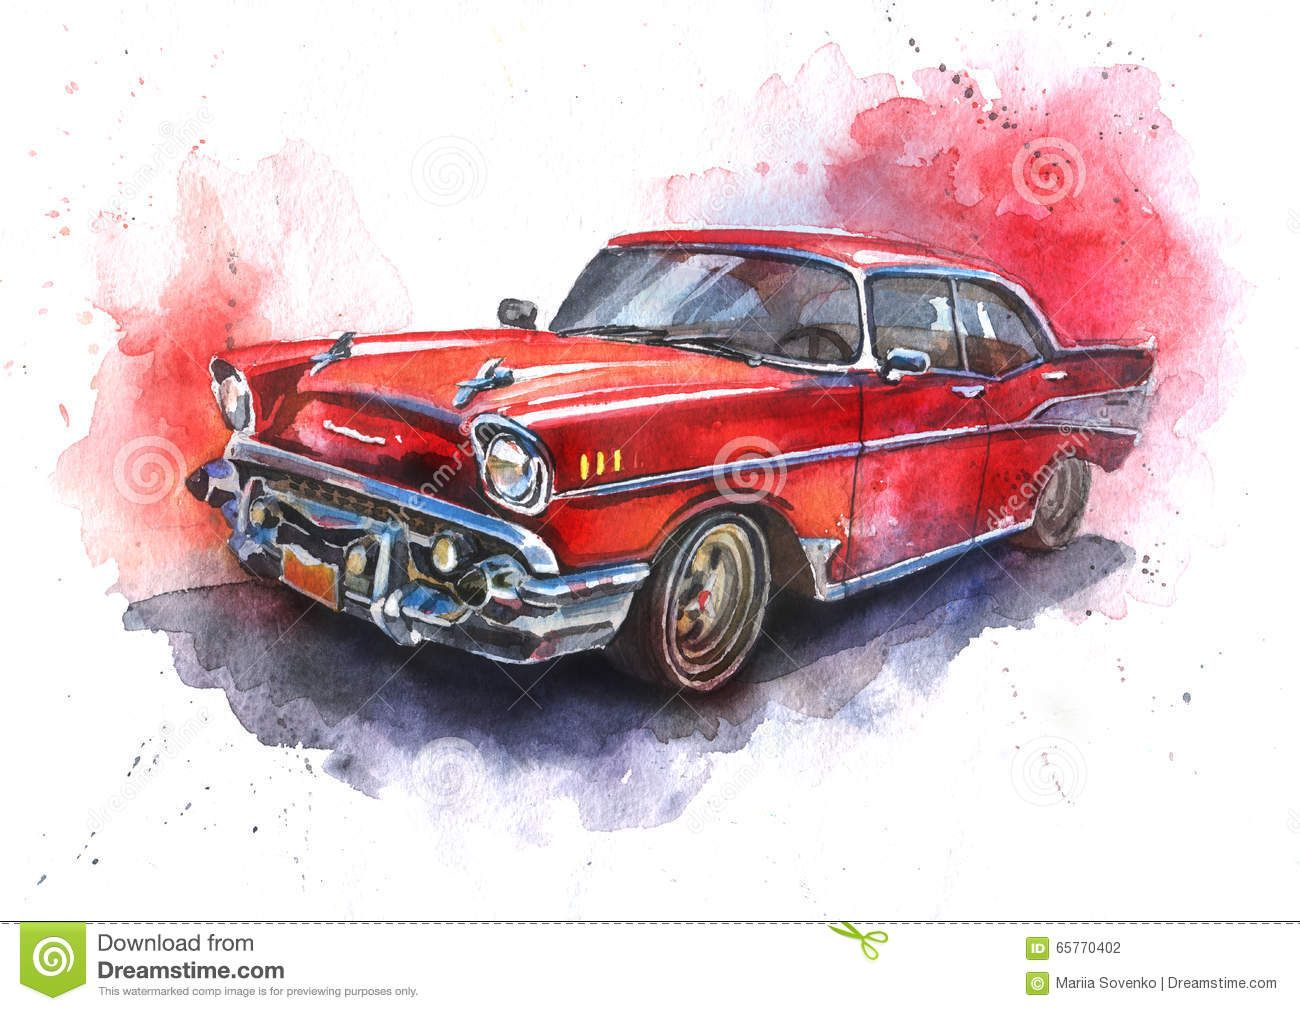 Bilderesultater For Watercolor Paintings Of Cars Car Painting Car Tattoos How To Draw Hands